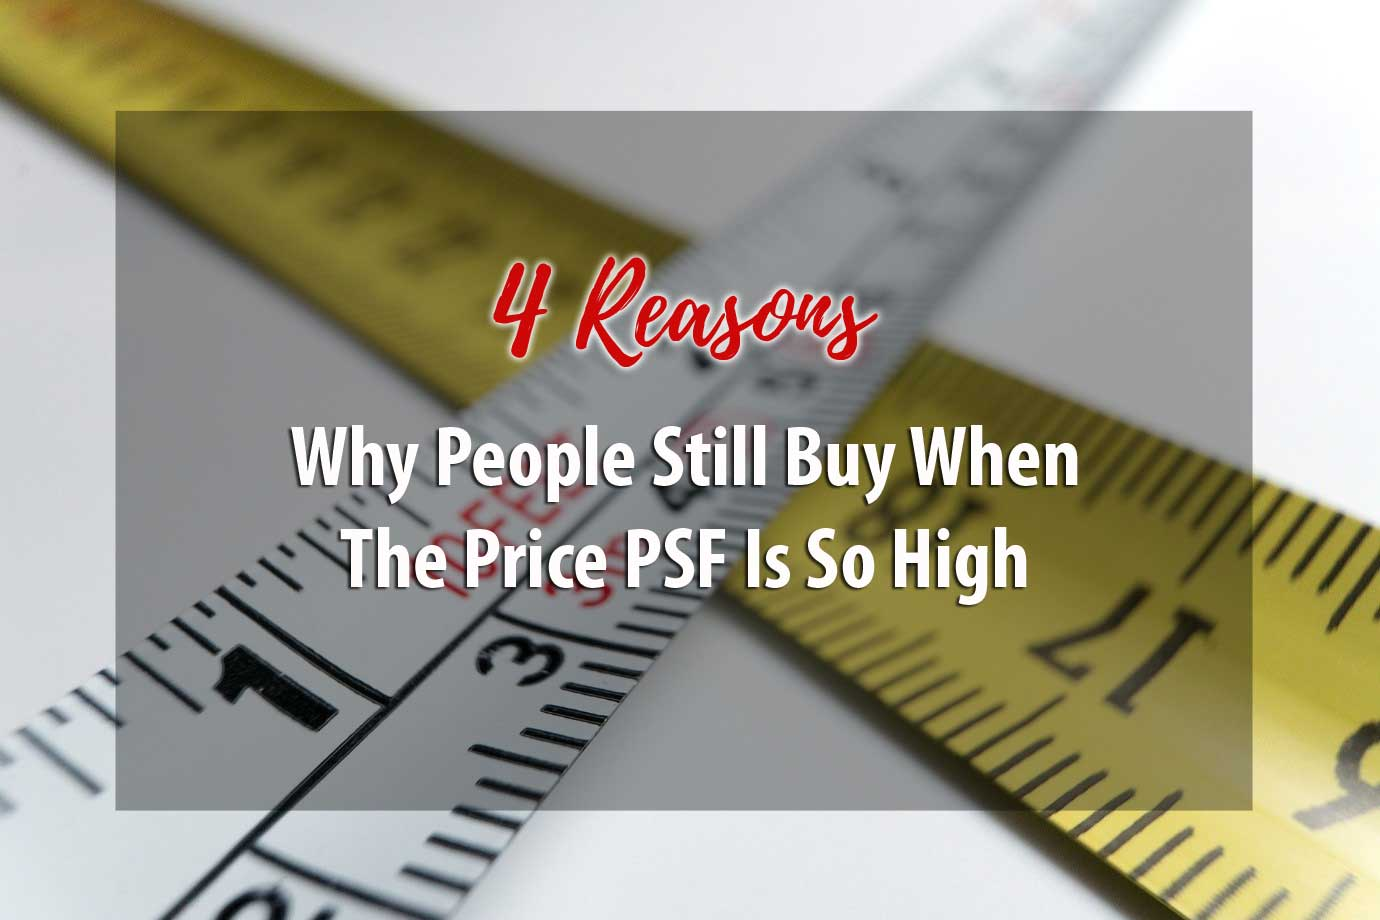 4 reasons why people still buy when the $psf is so high